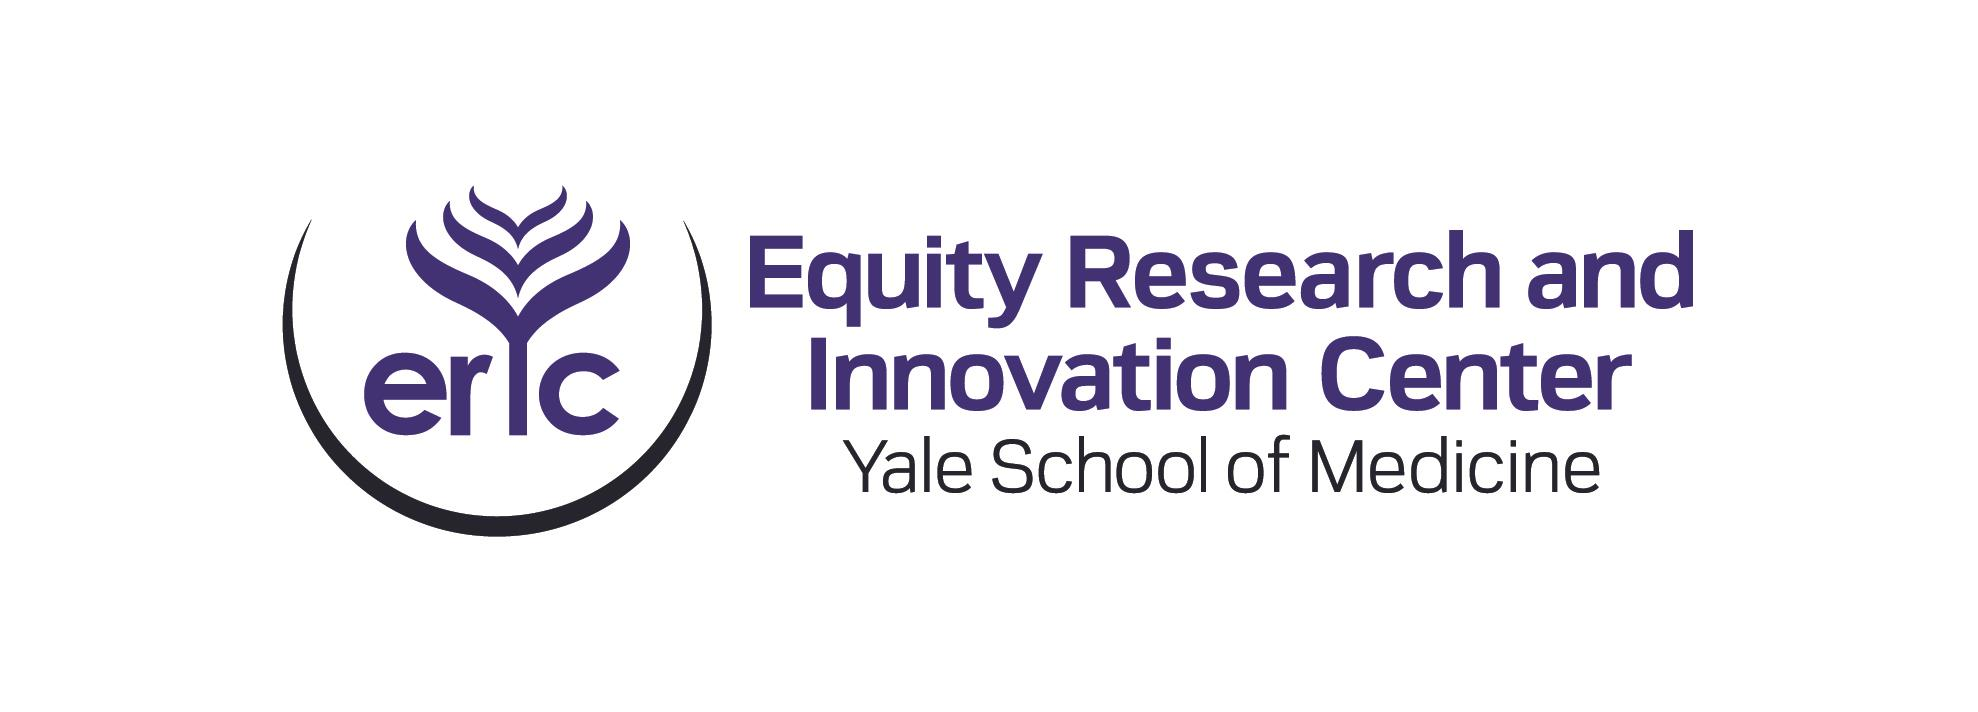 Equity Research and Innovation Center (ERIC)